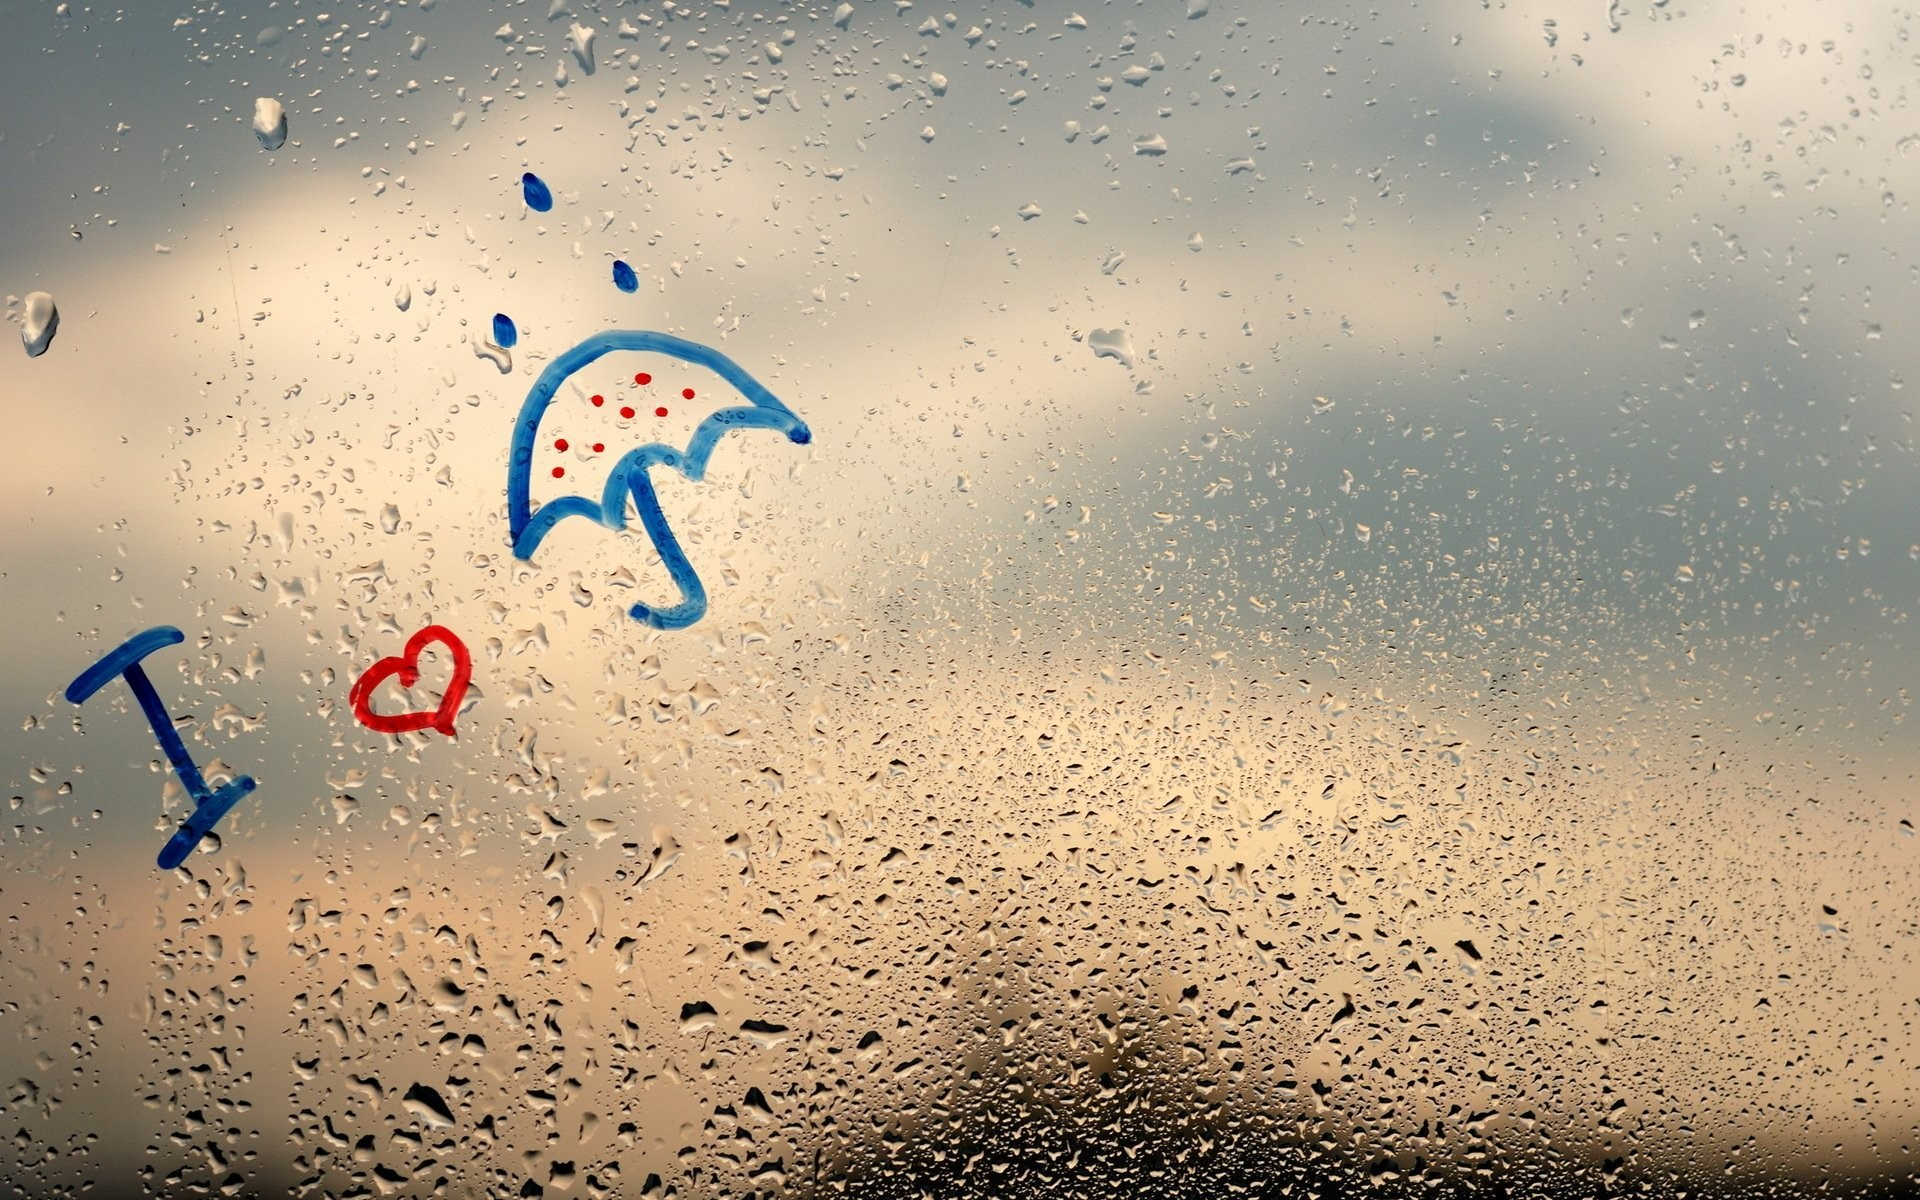 Rainy day wallpaper images 62 images - Rainy window wallpaper ...